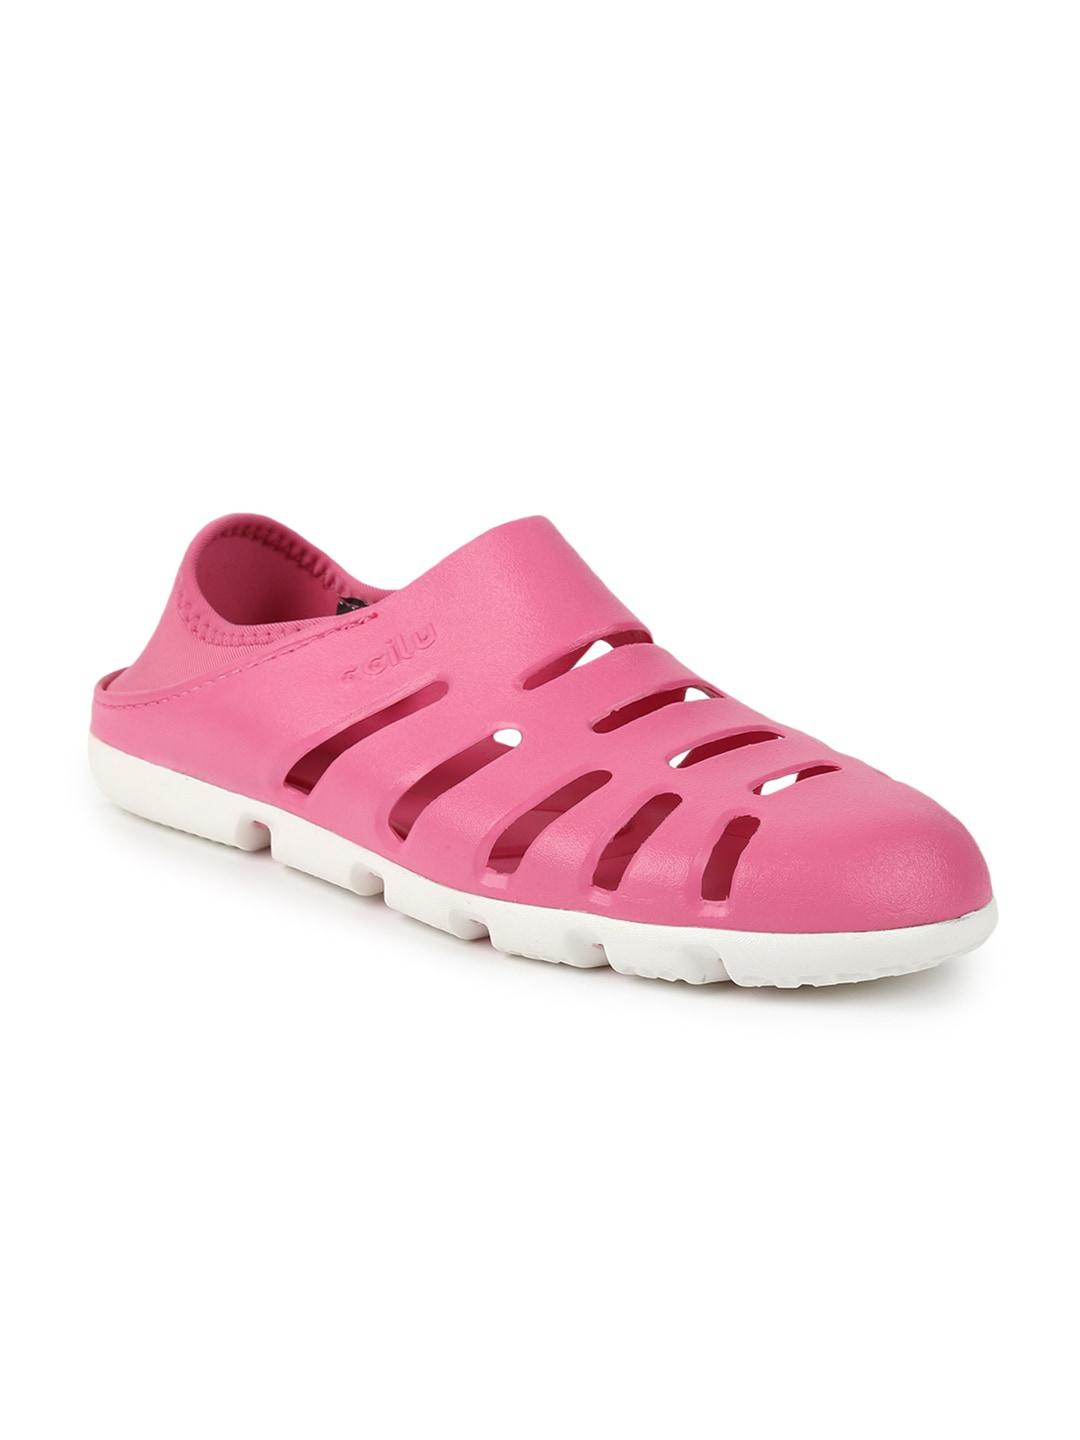 CCILU Women Pink Slip-On Sneakers image